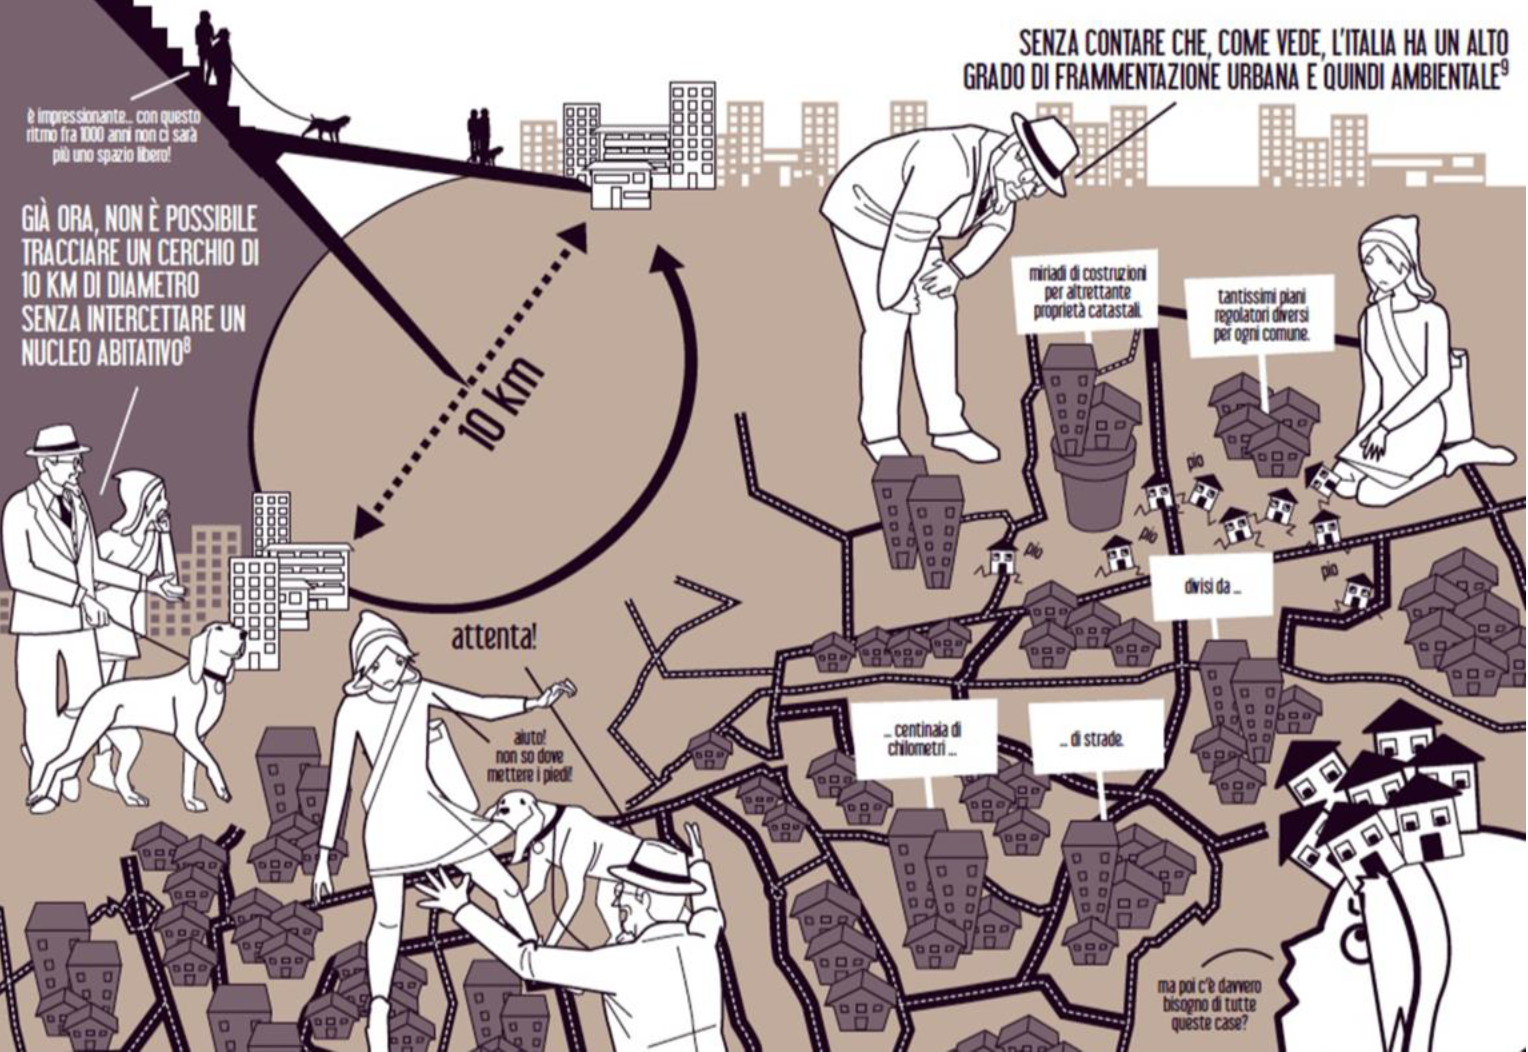 Teaching Cartography with Comics: Some Examples from BeccoGiallo's Graphic Novel Series